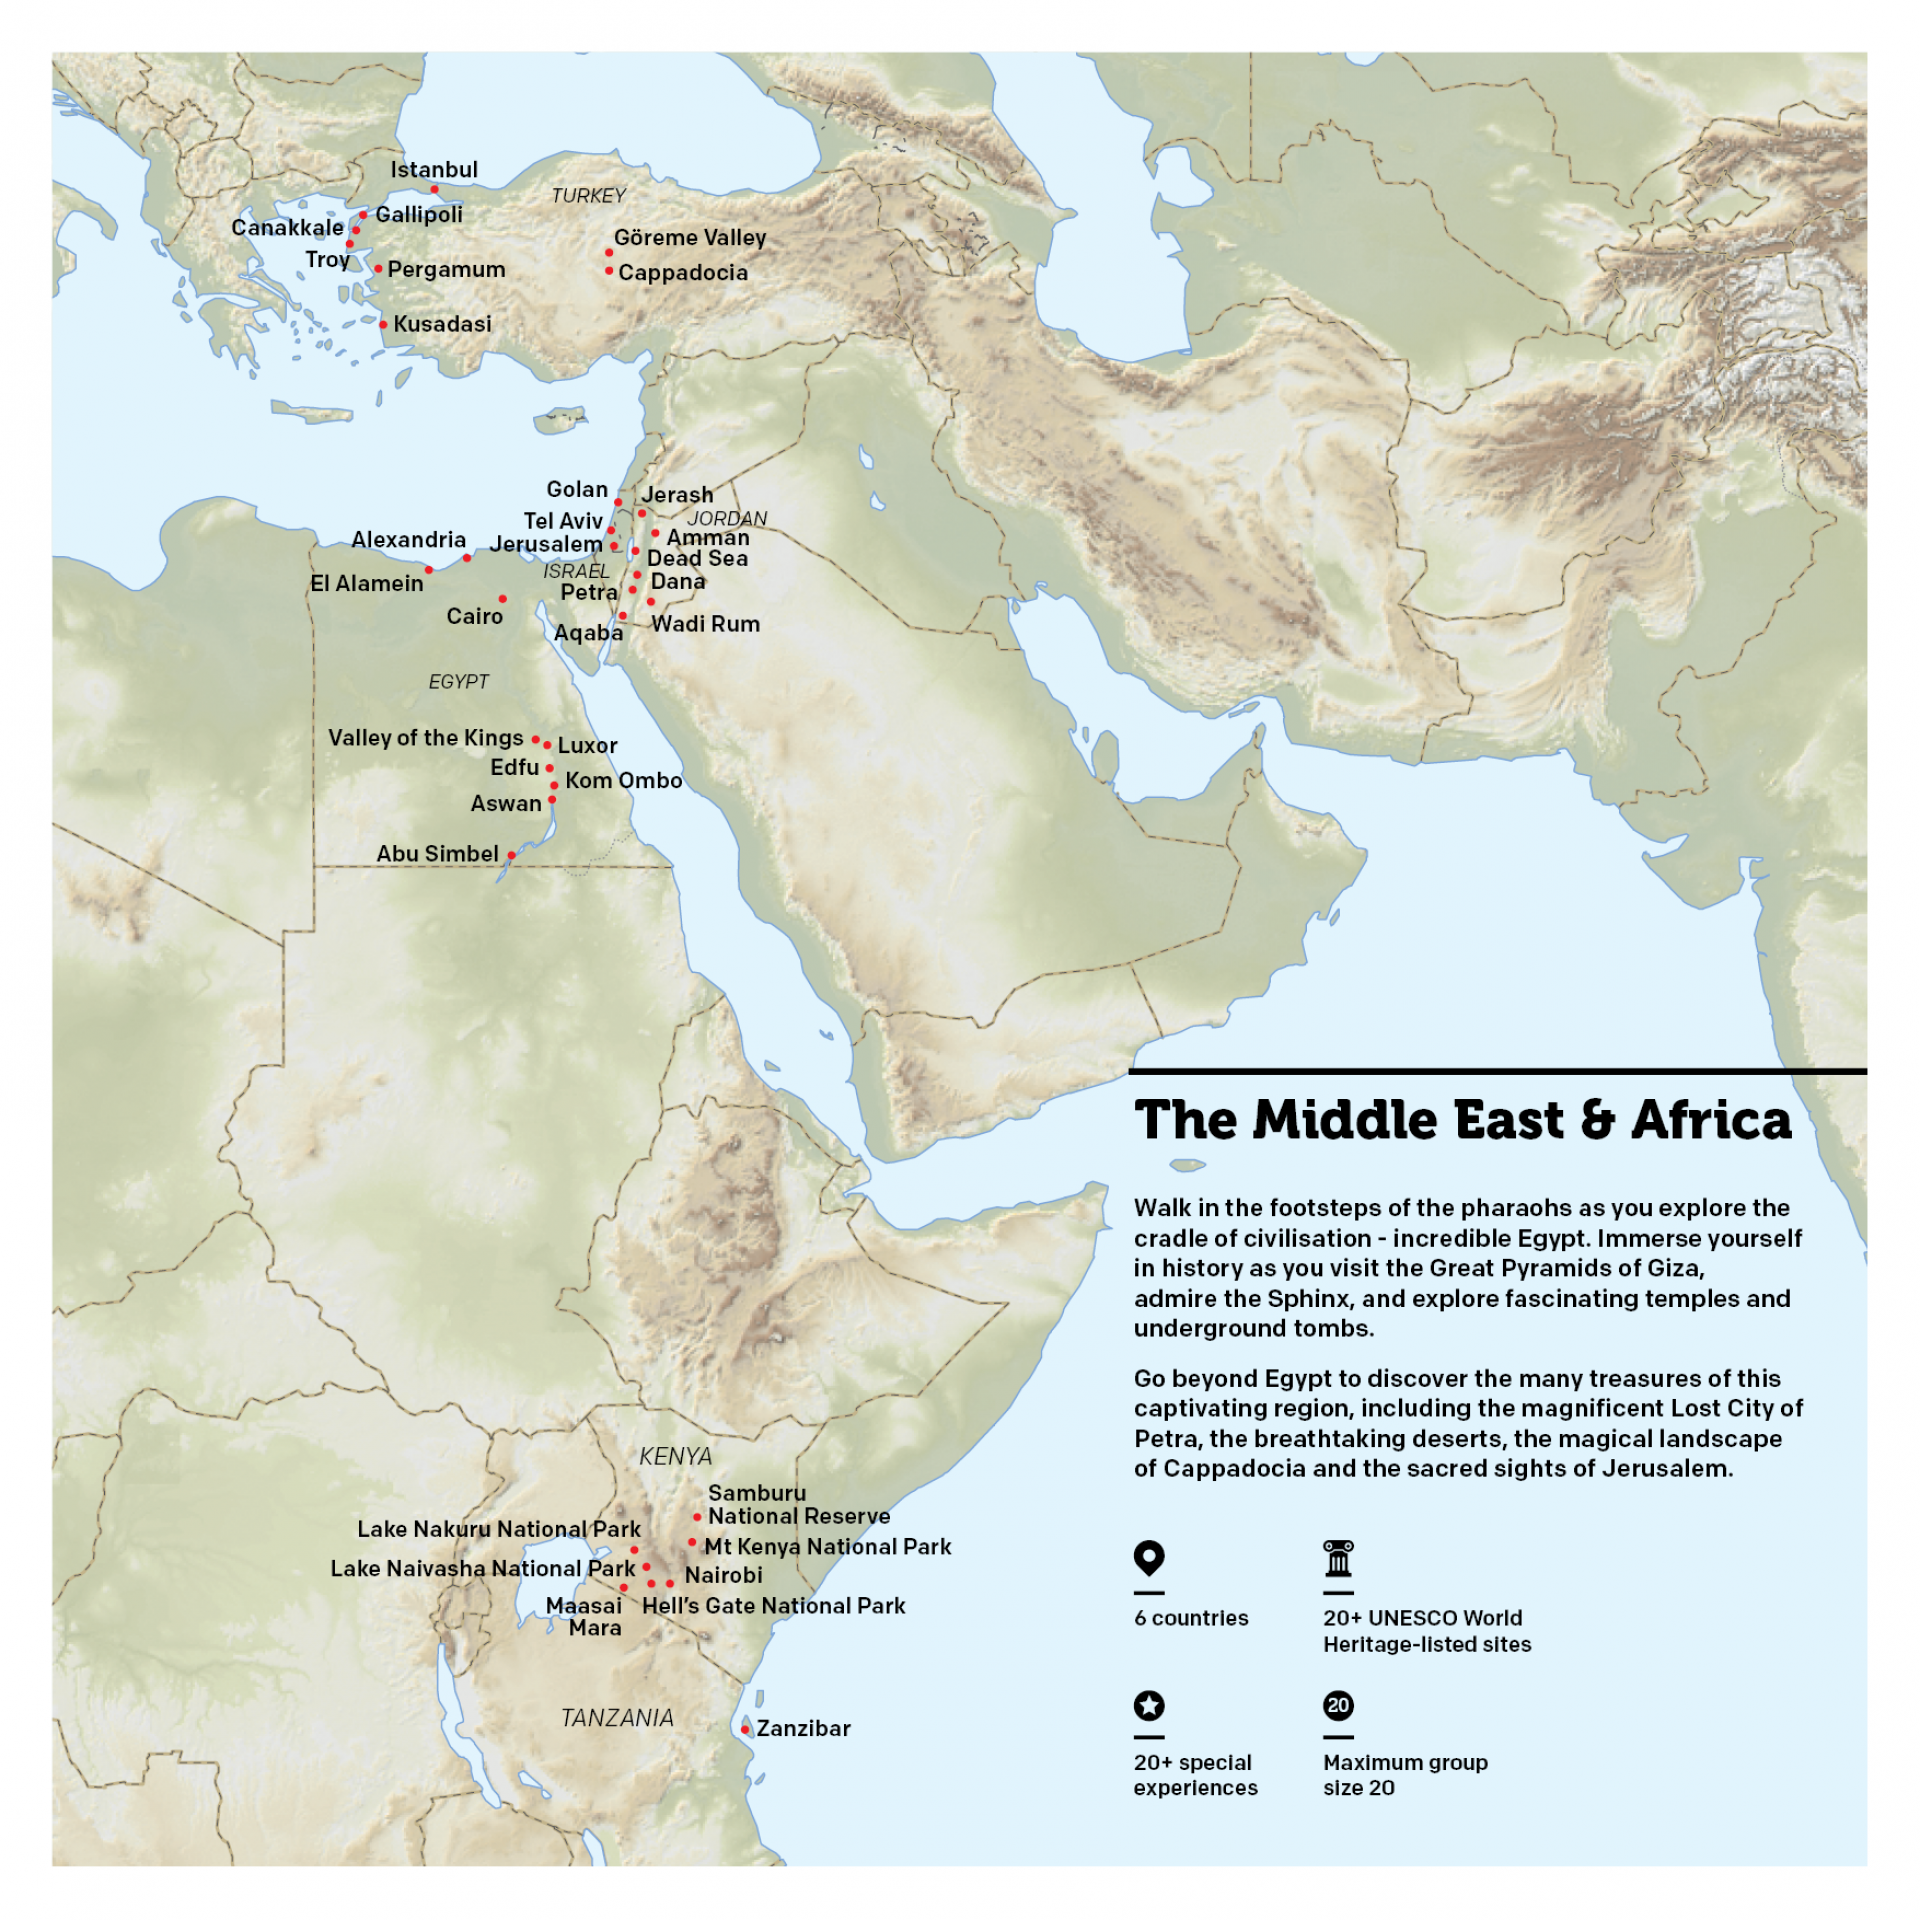 Map of Egypt & Middle East